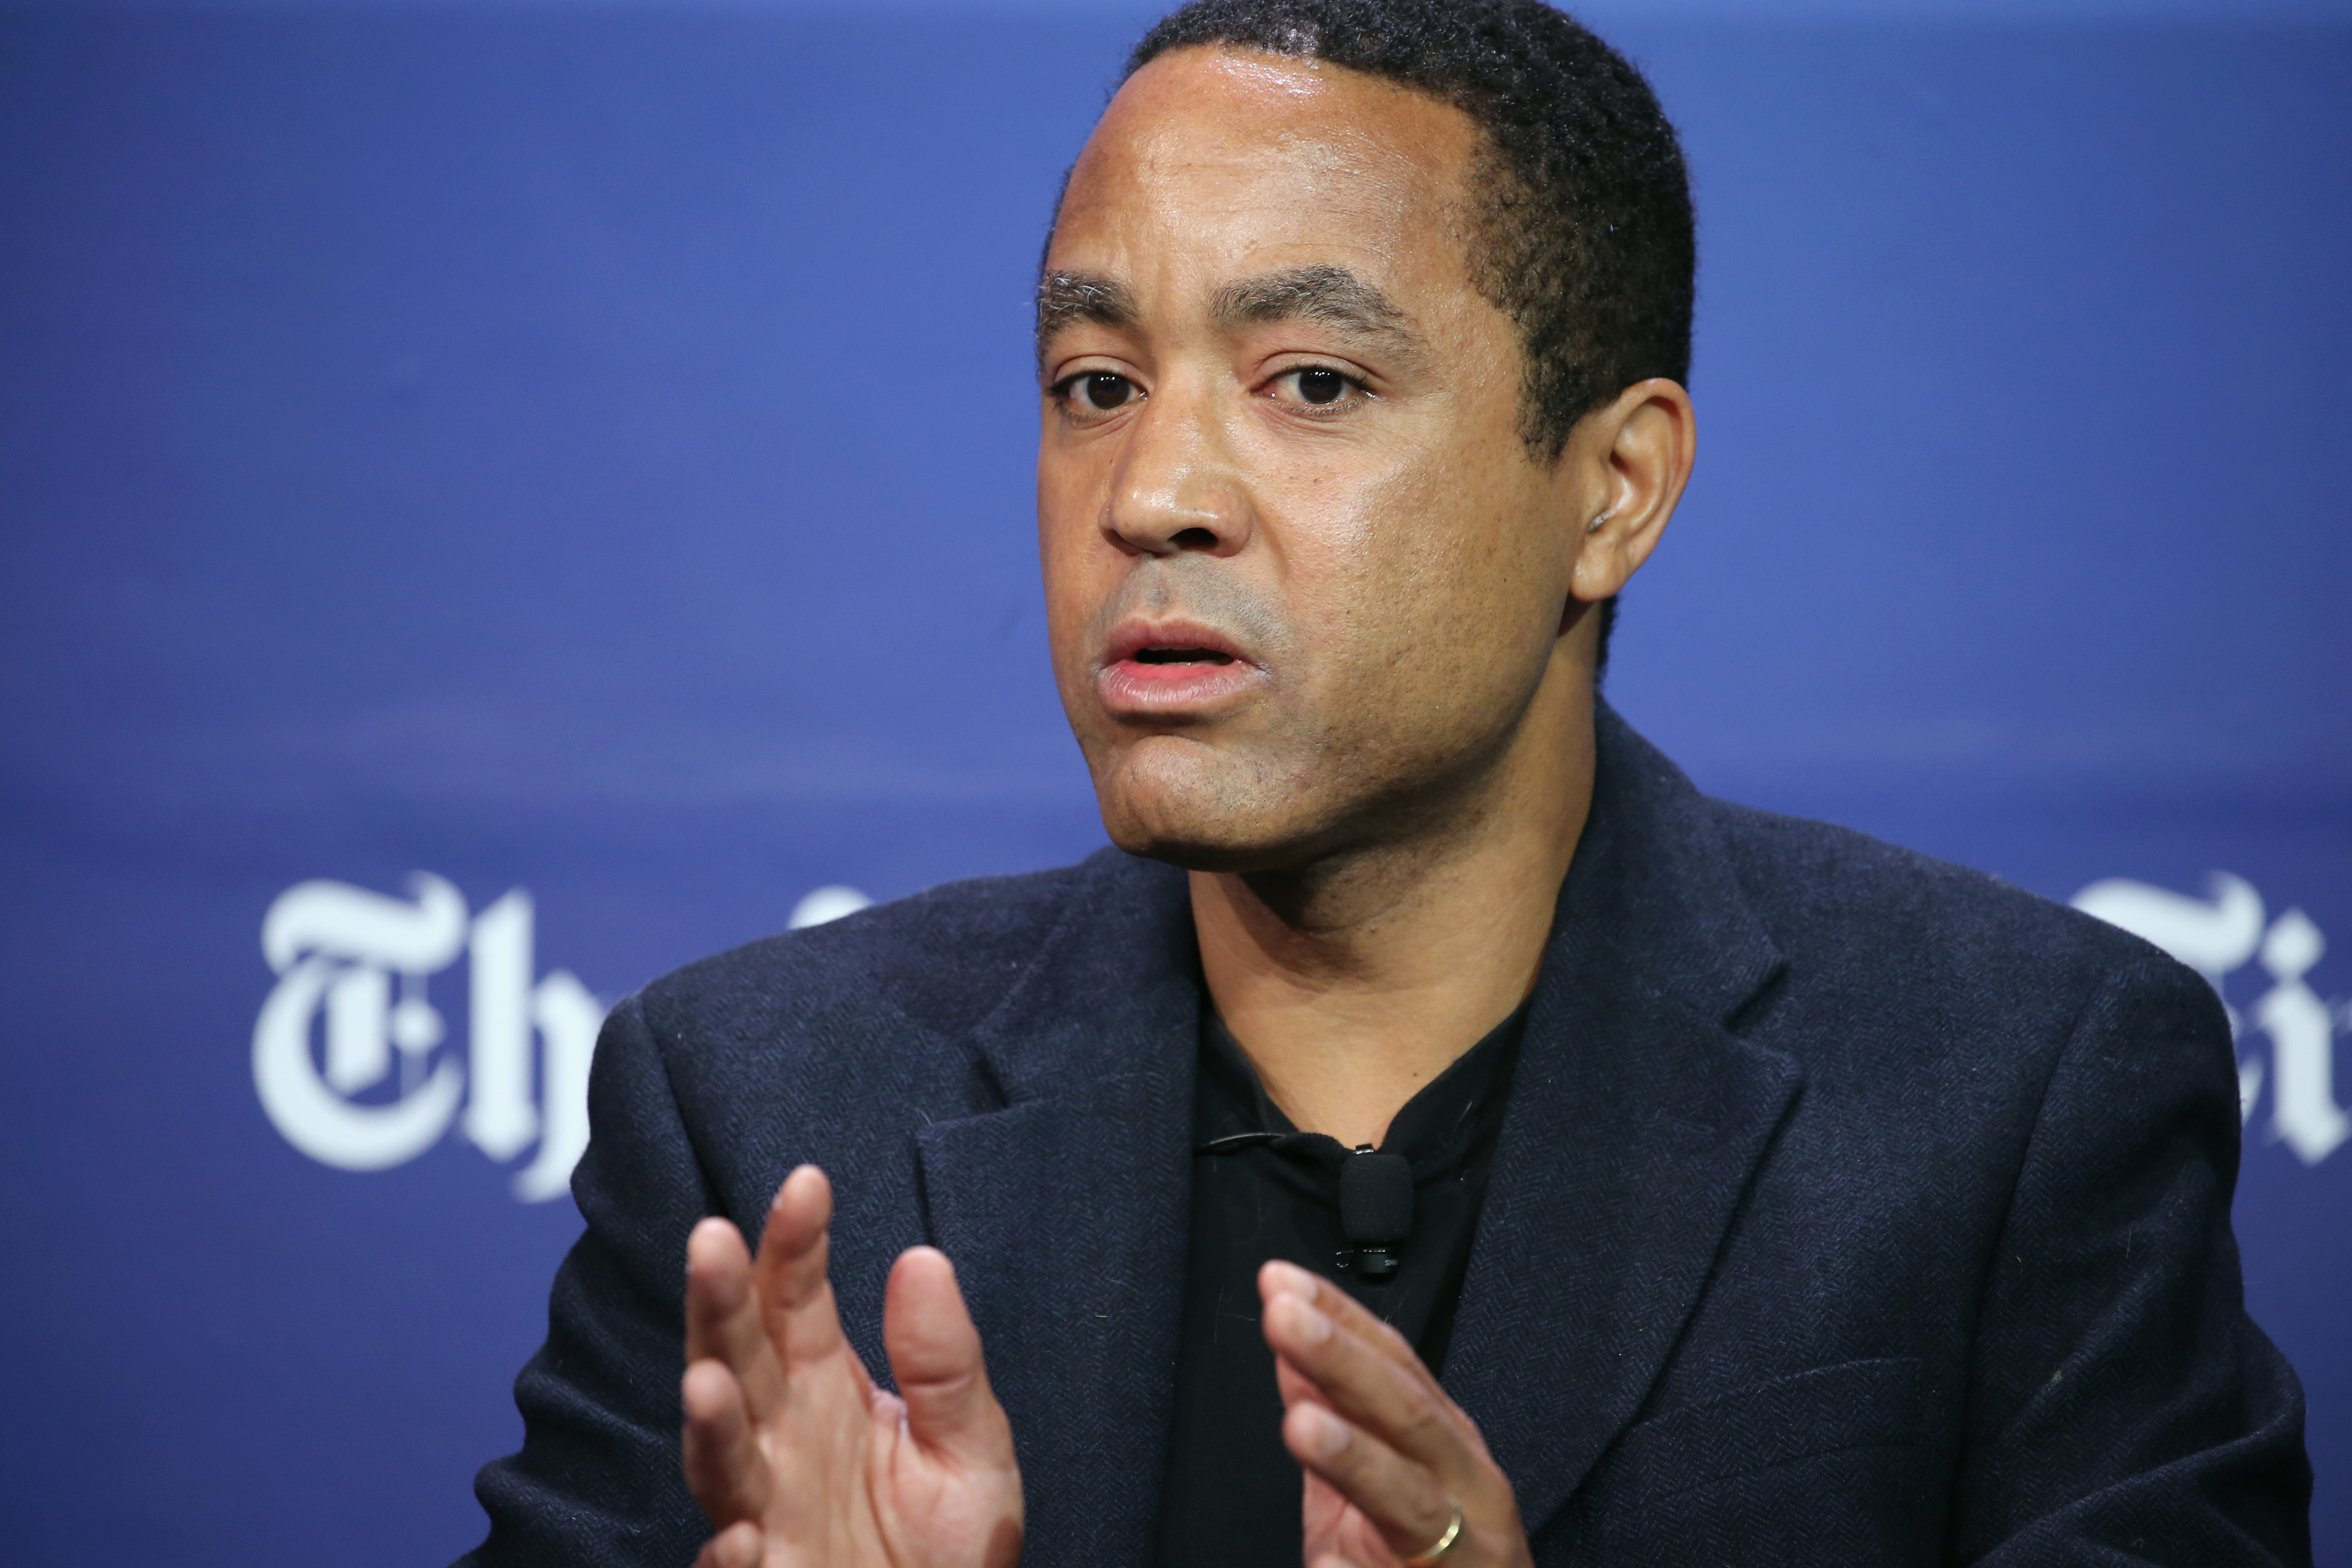 Author, columnist and professor at Columbia University, John McWhorter in New York City. (Photo by Neilson Barnard/Getty Images for New York Times)